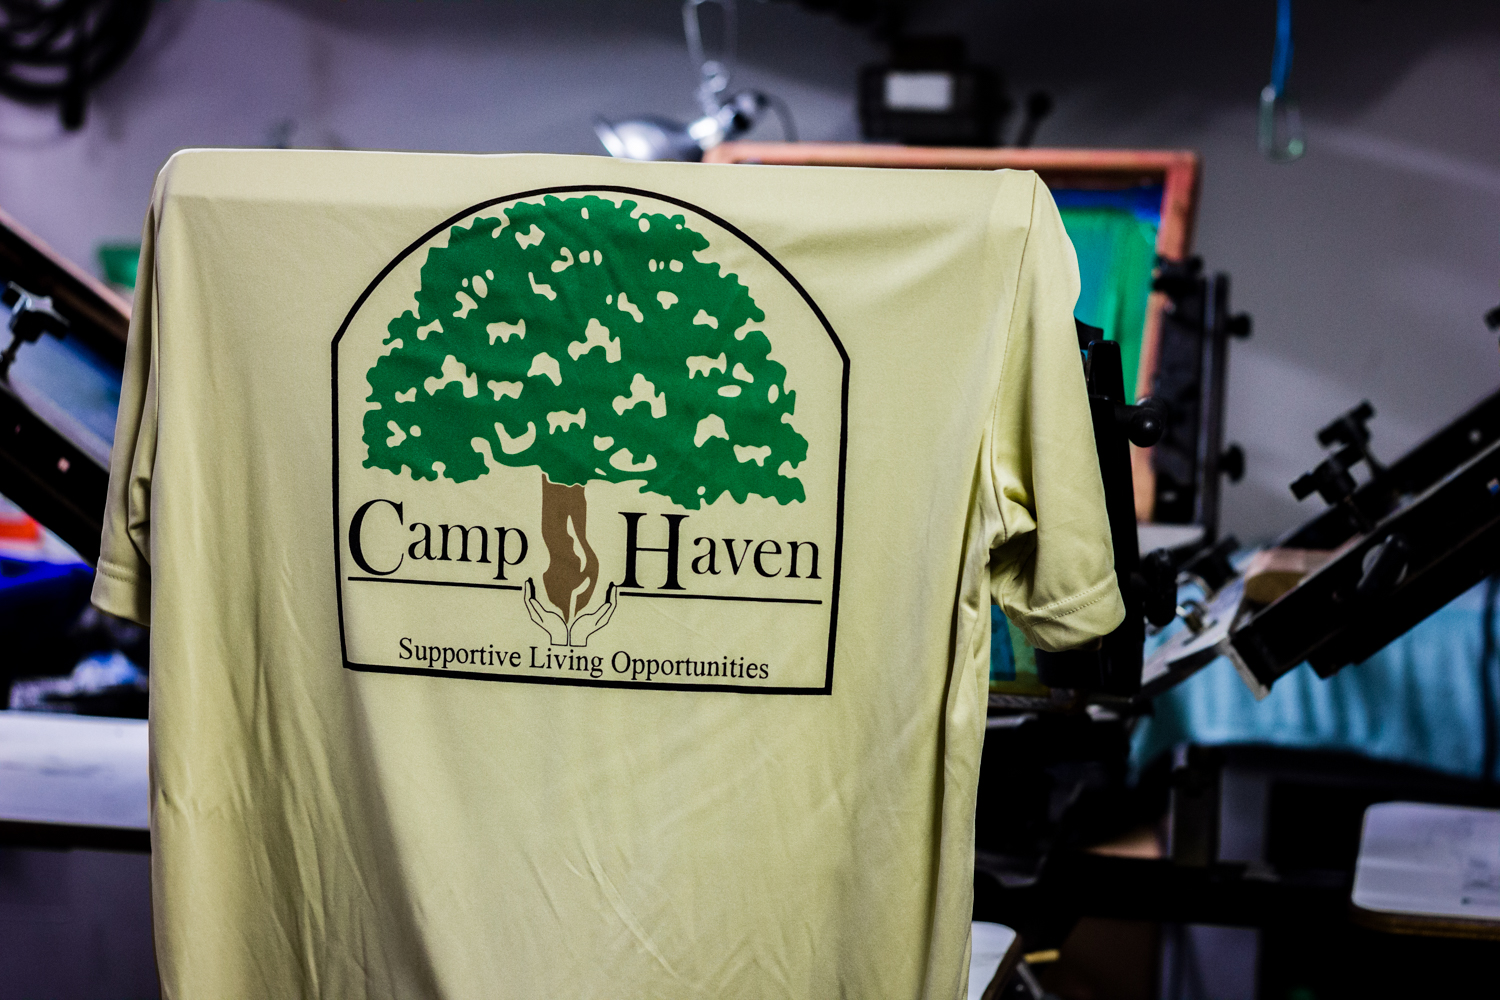 Camp Haven